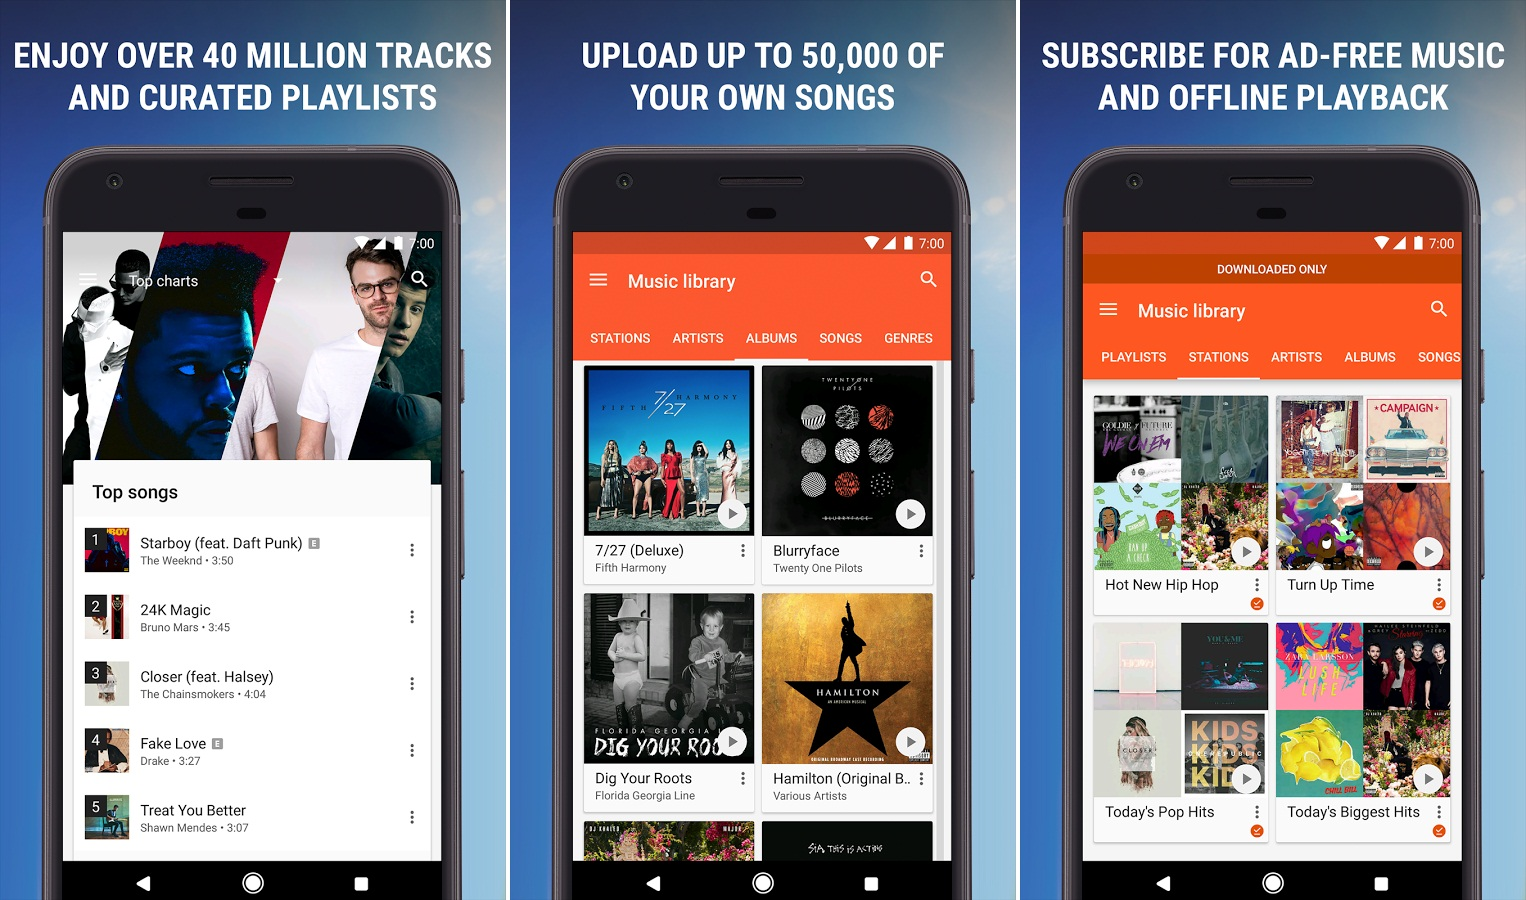 ANDROID APPS 2017, techloudgeek.com, techloudgeek, Google Play Music and YouTube